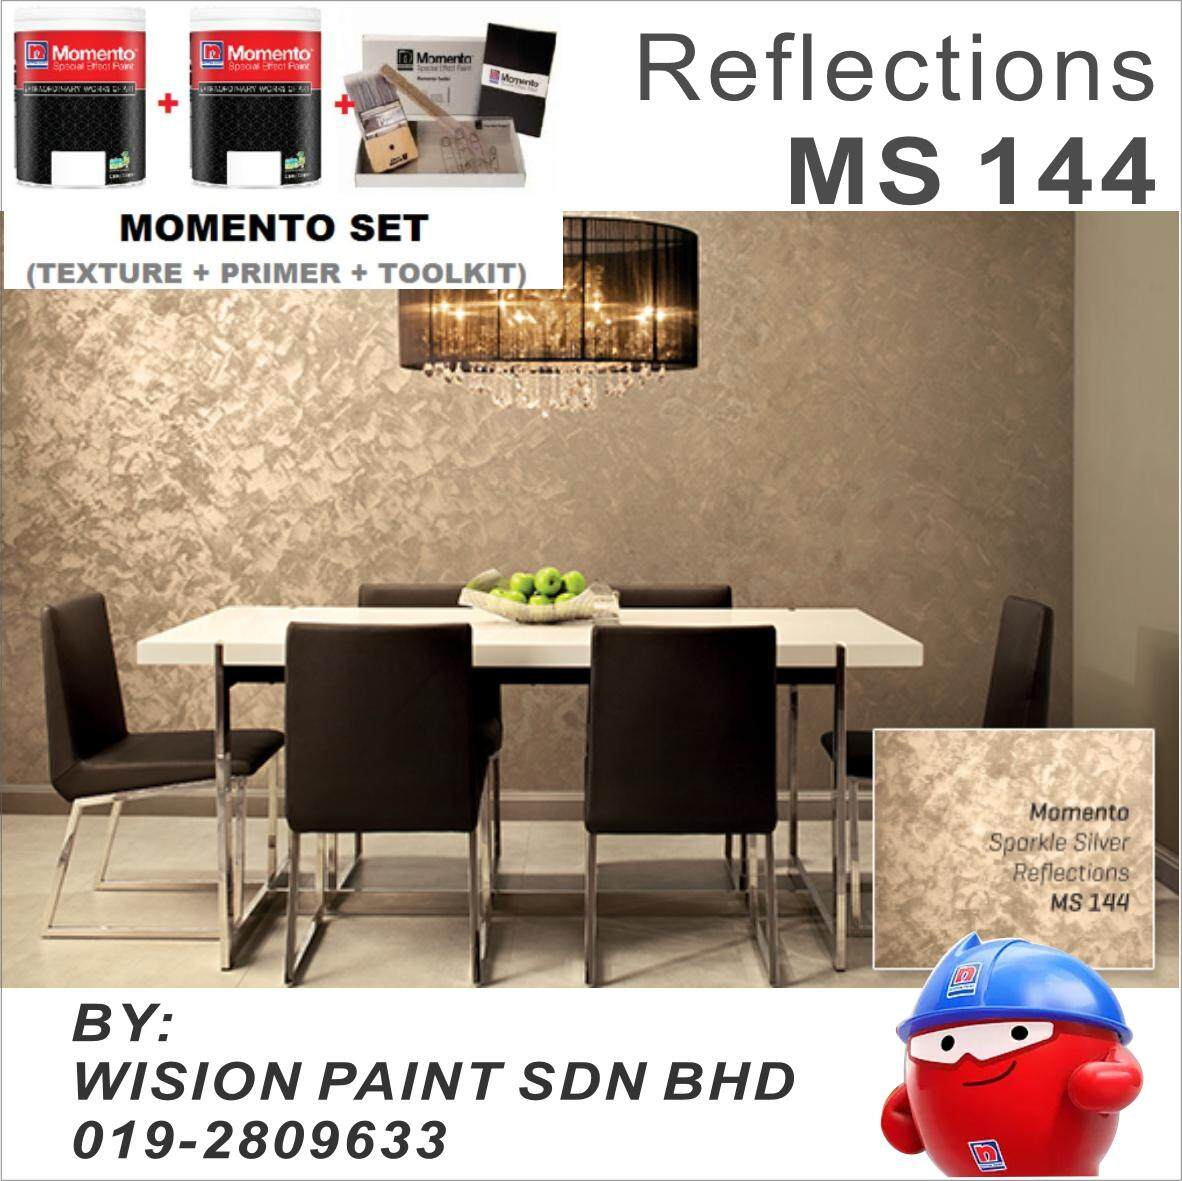 MS 144 reflections ( MOMENTO SET 1 LITER TEXTURE + 1 LITER PRIMER + TOOLKIT ) SPARKLE SILVER NIPPON PAINT